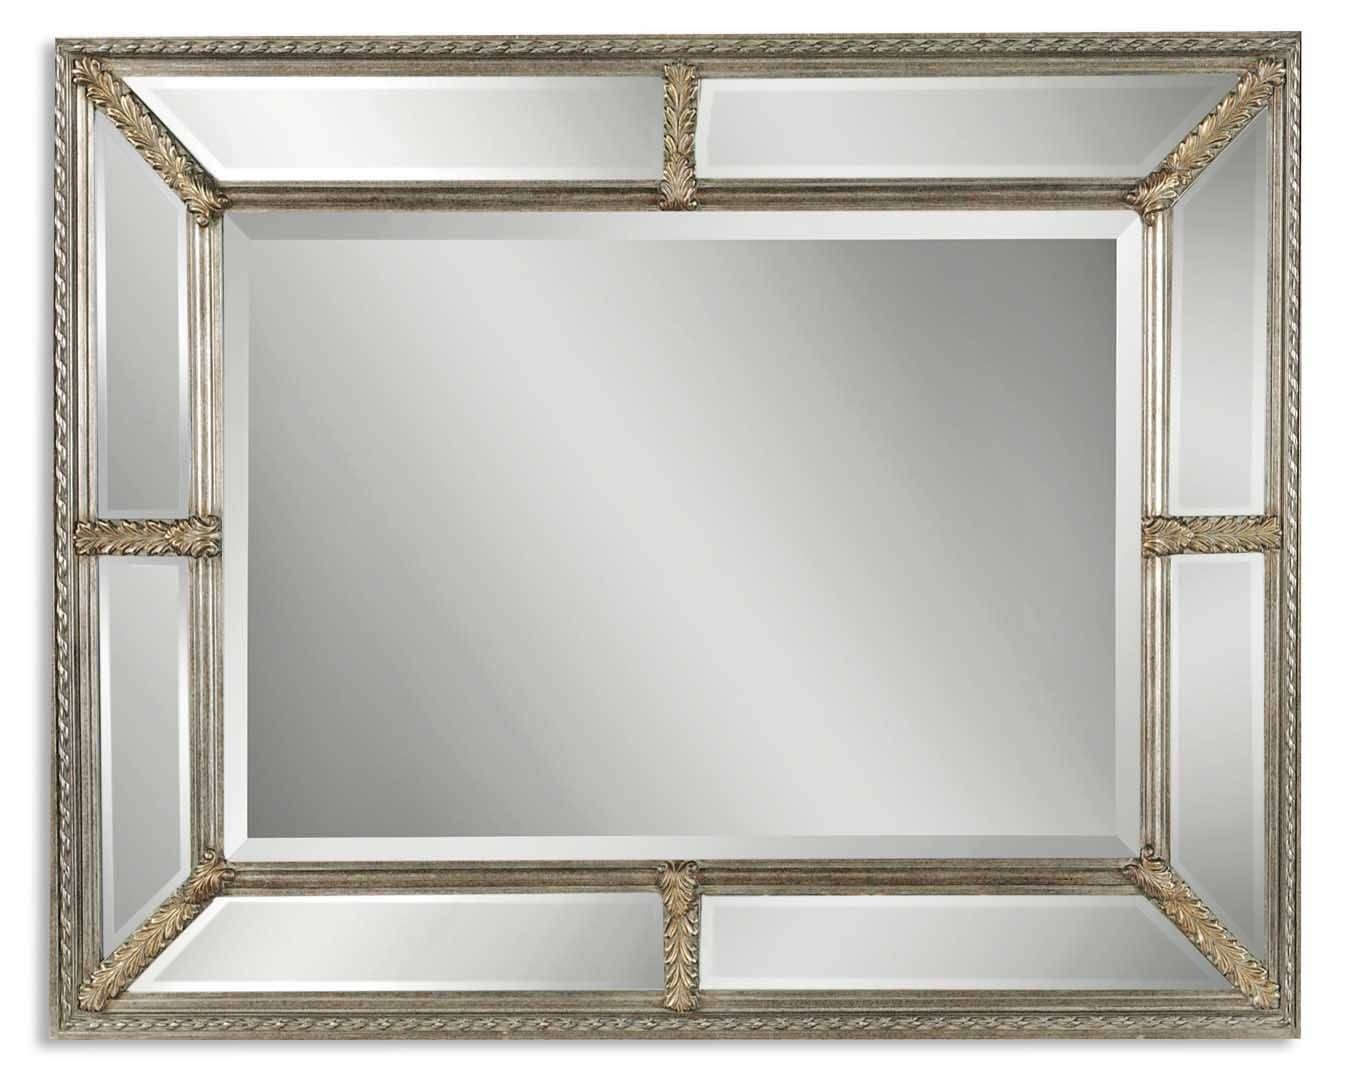 Uttermost Lucinda Antique Silver Mirror 14048 B for Champagne Silver Mirrors (Image 12 of 15)